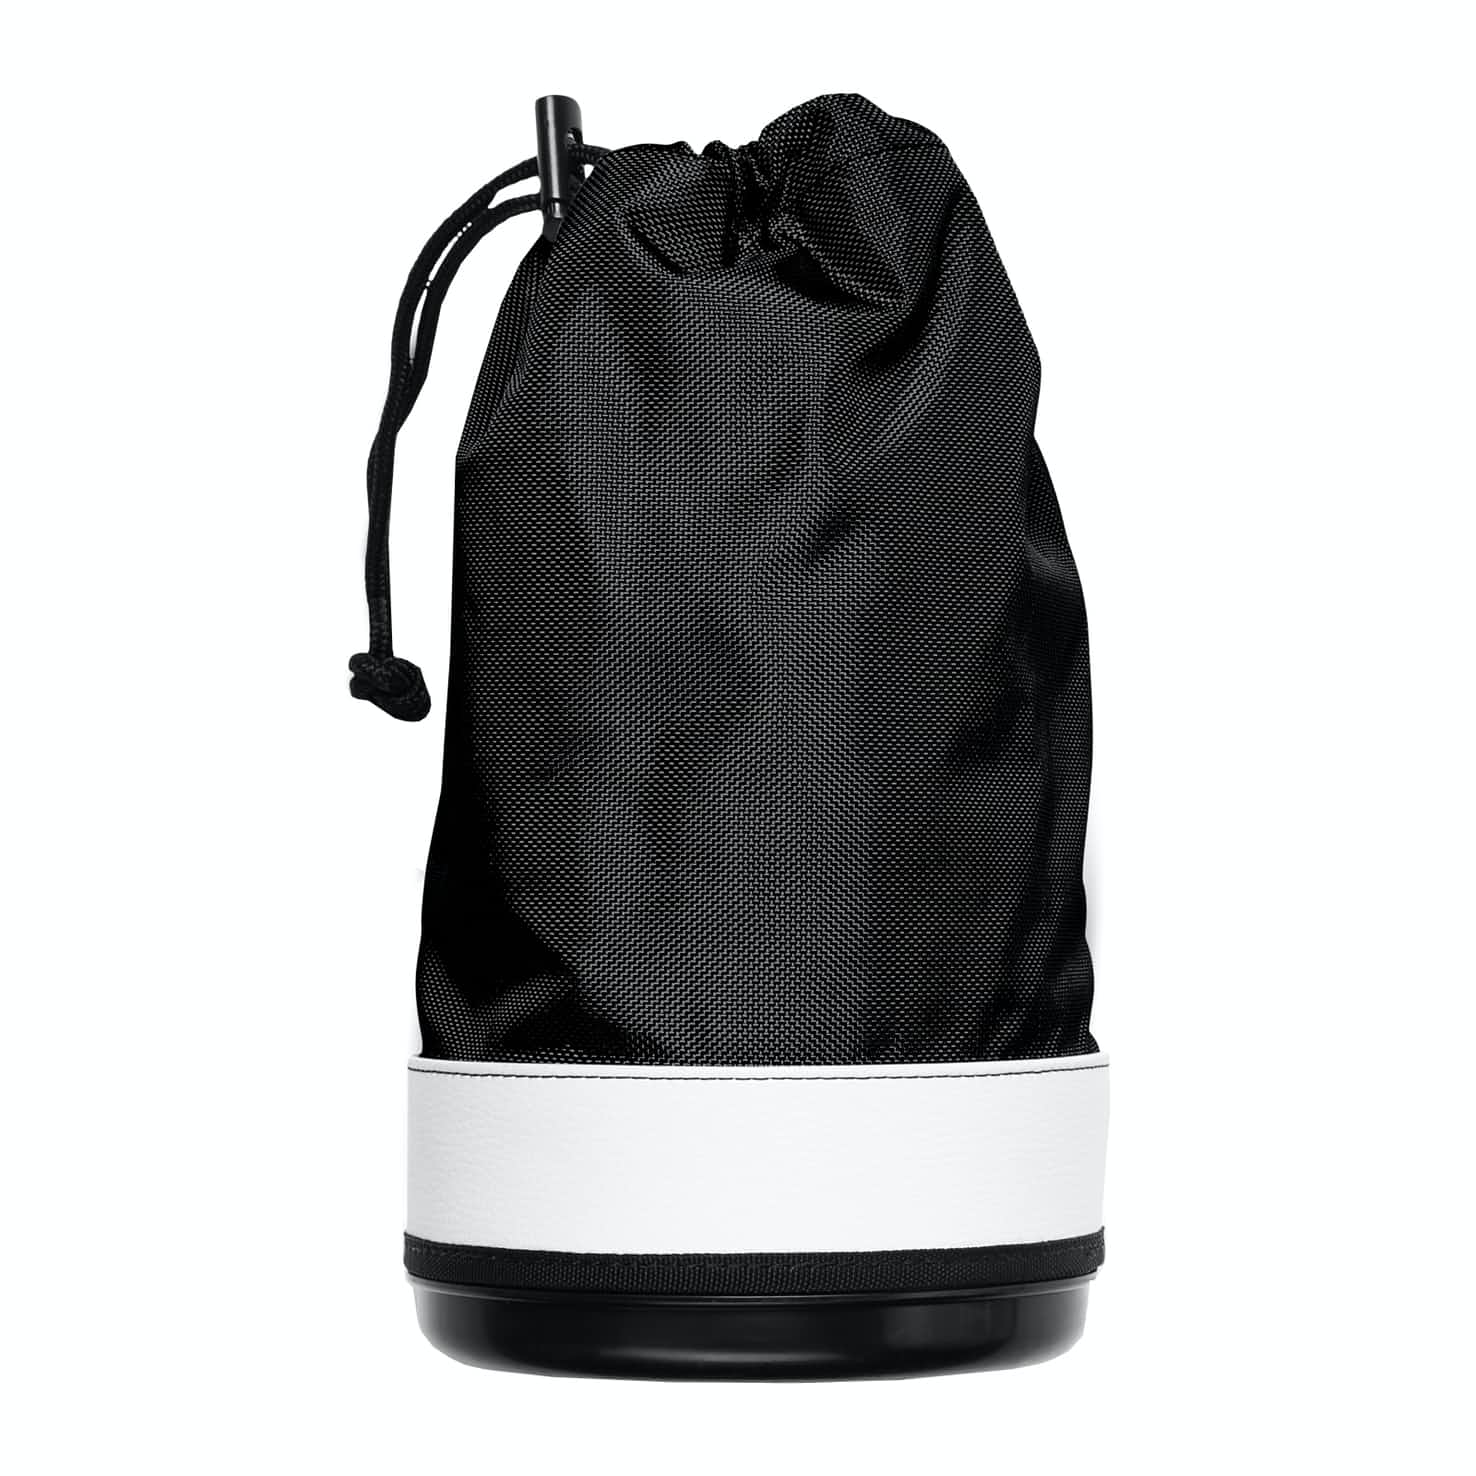 Ranger Shag Bag Black - 2020